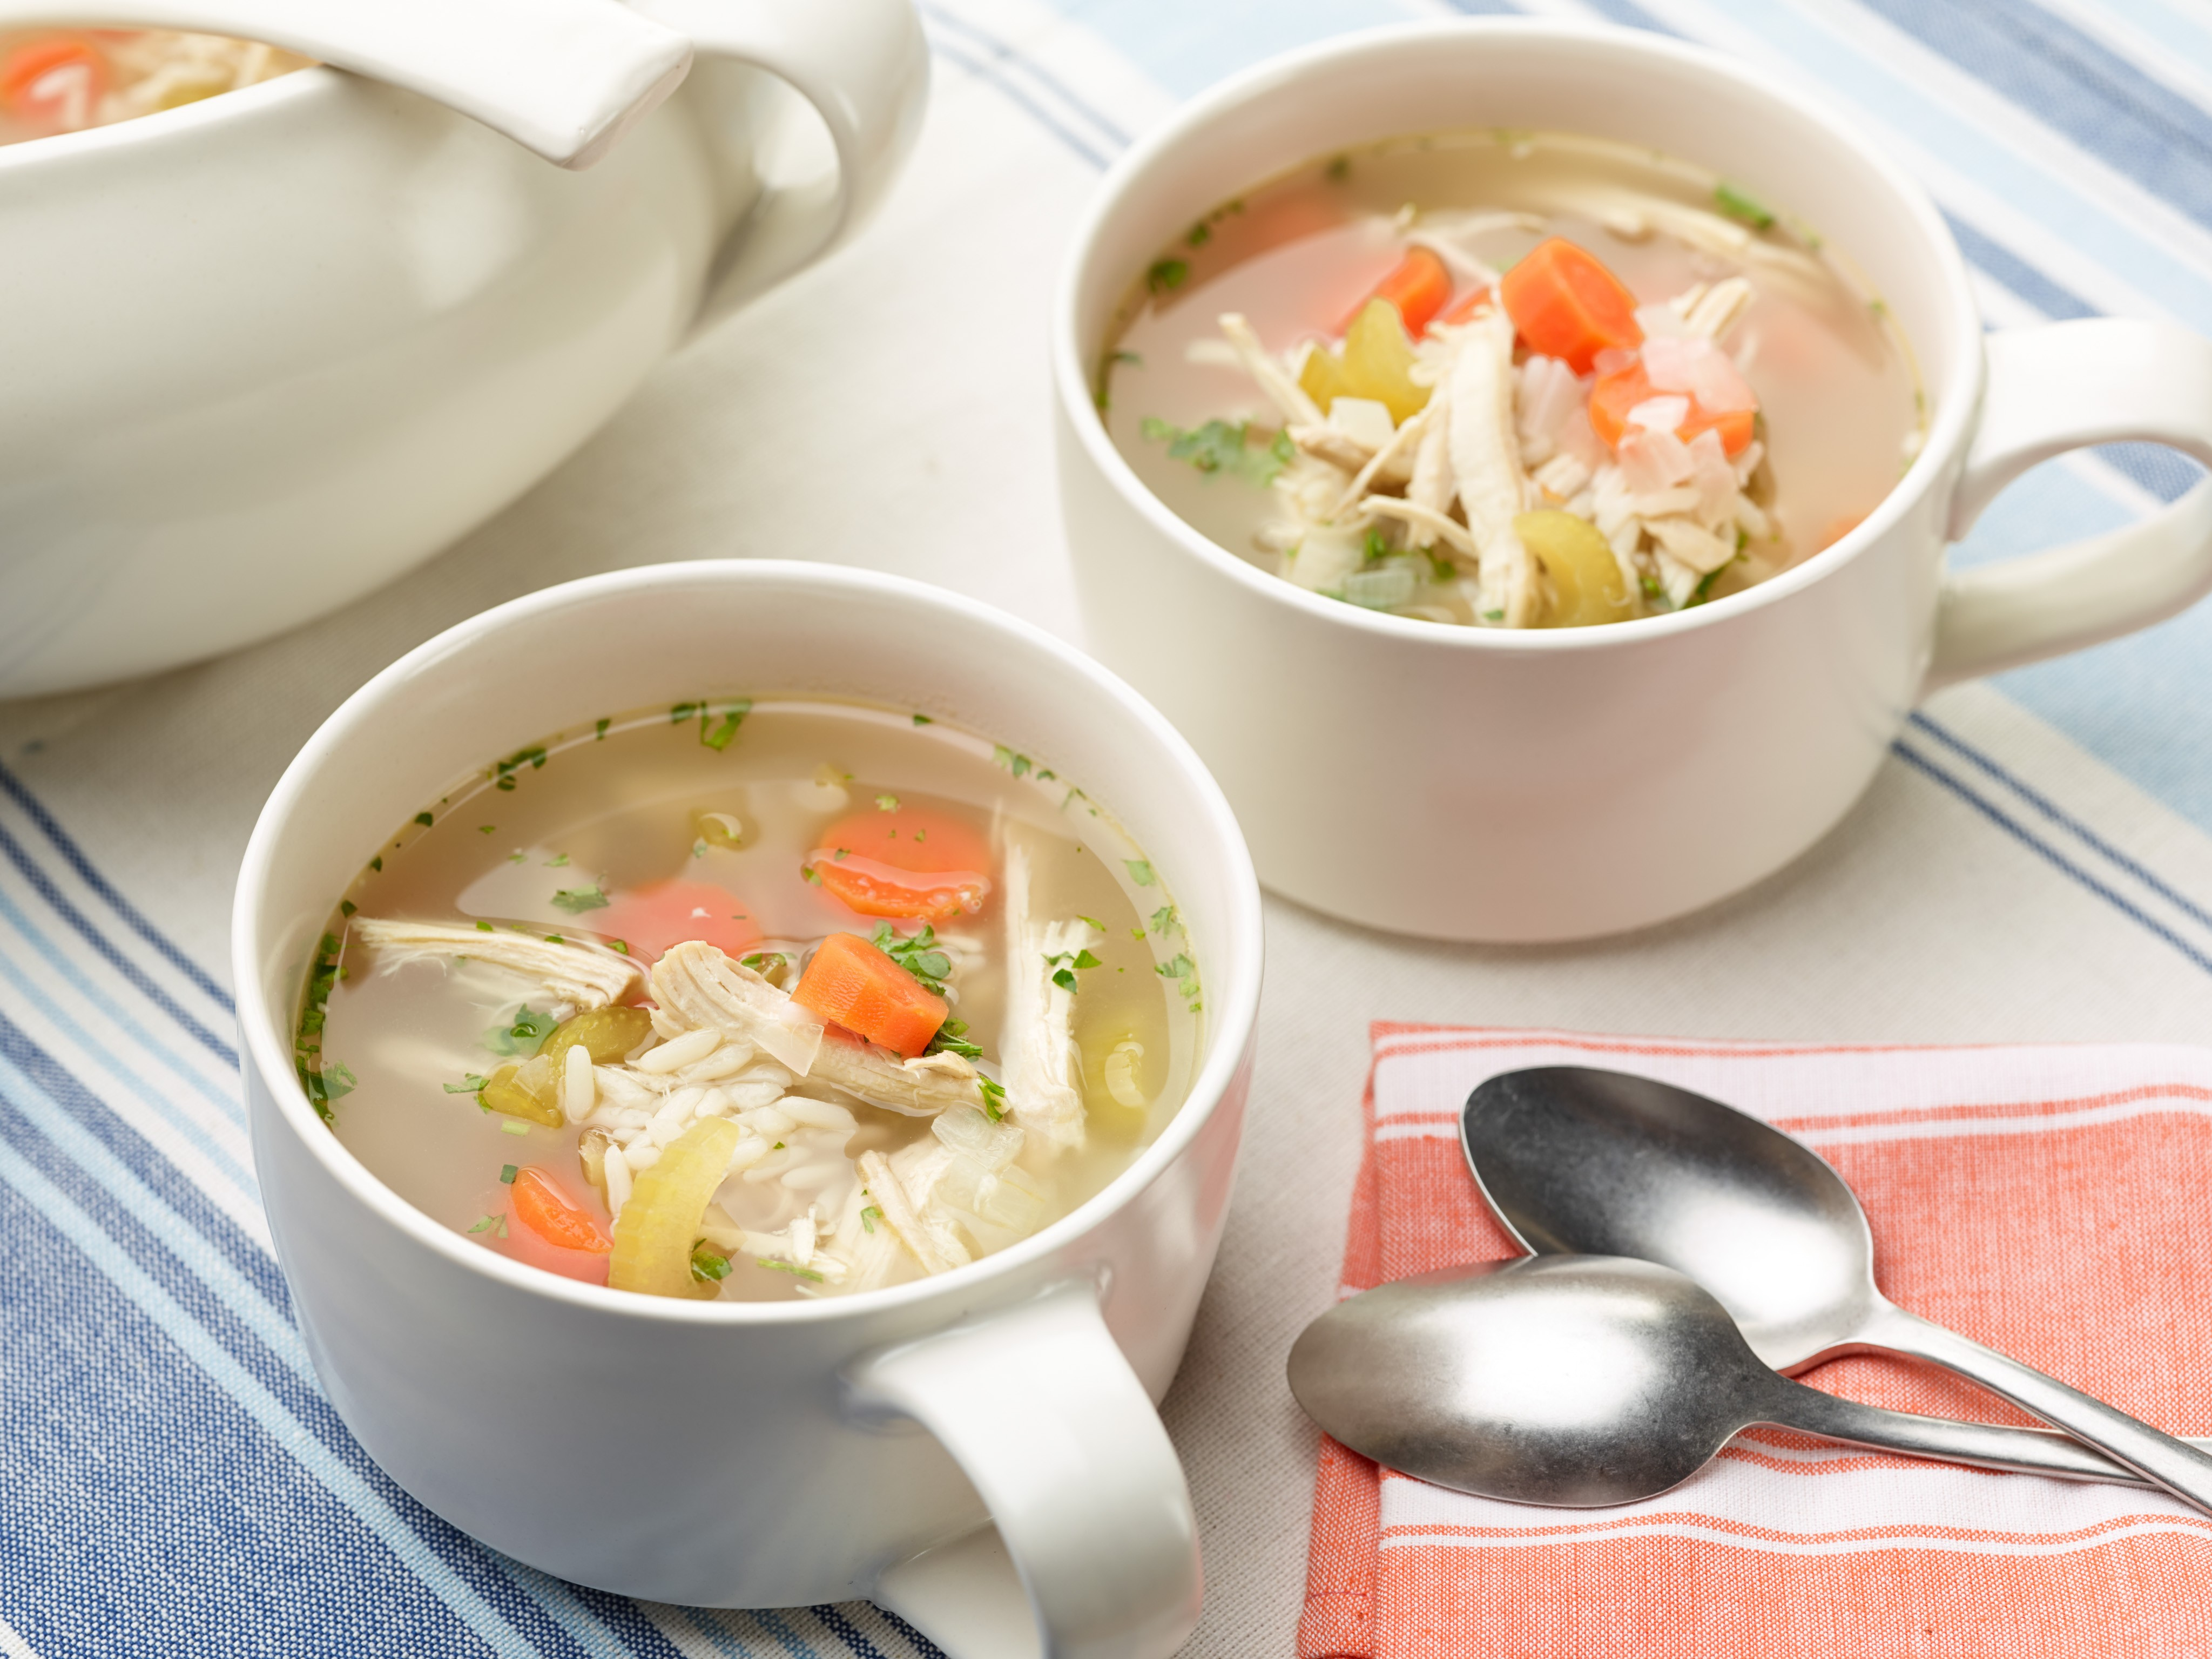 How To Make Chicken Soup In The Instant Pot The Mama Maven Blog  20160129chickensouprecipesroundup04g 20160129chickensouprecipesroundup12g